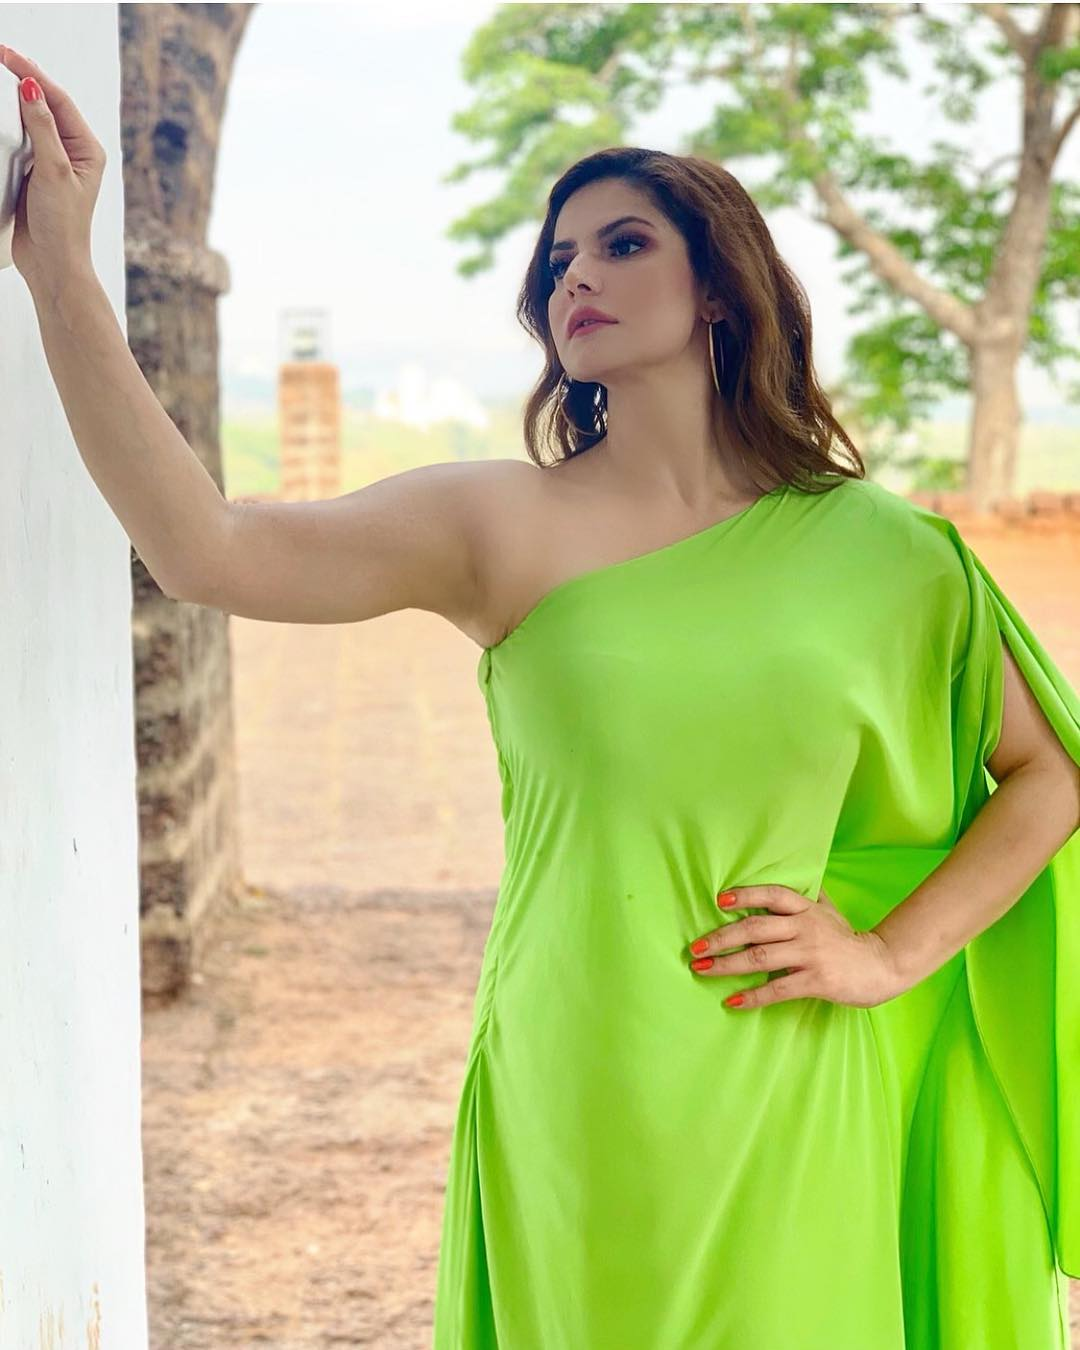 Zareen Khan top 30 Hottest HD Photos Wallpaper 2019 1080x1350